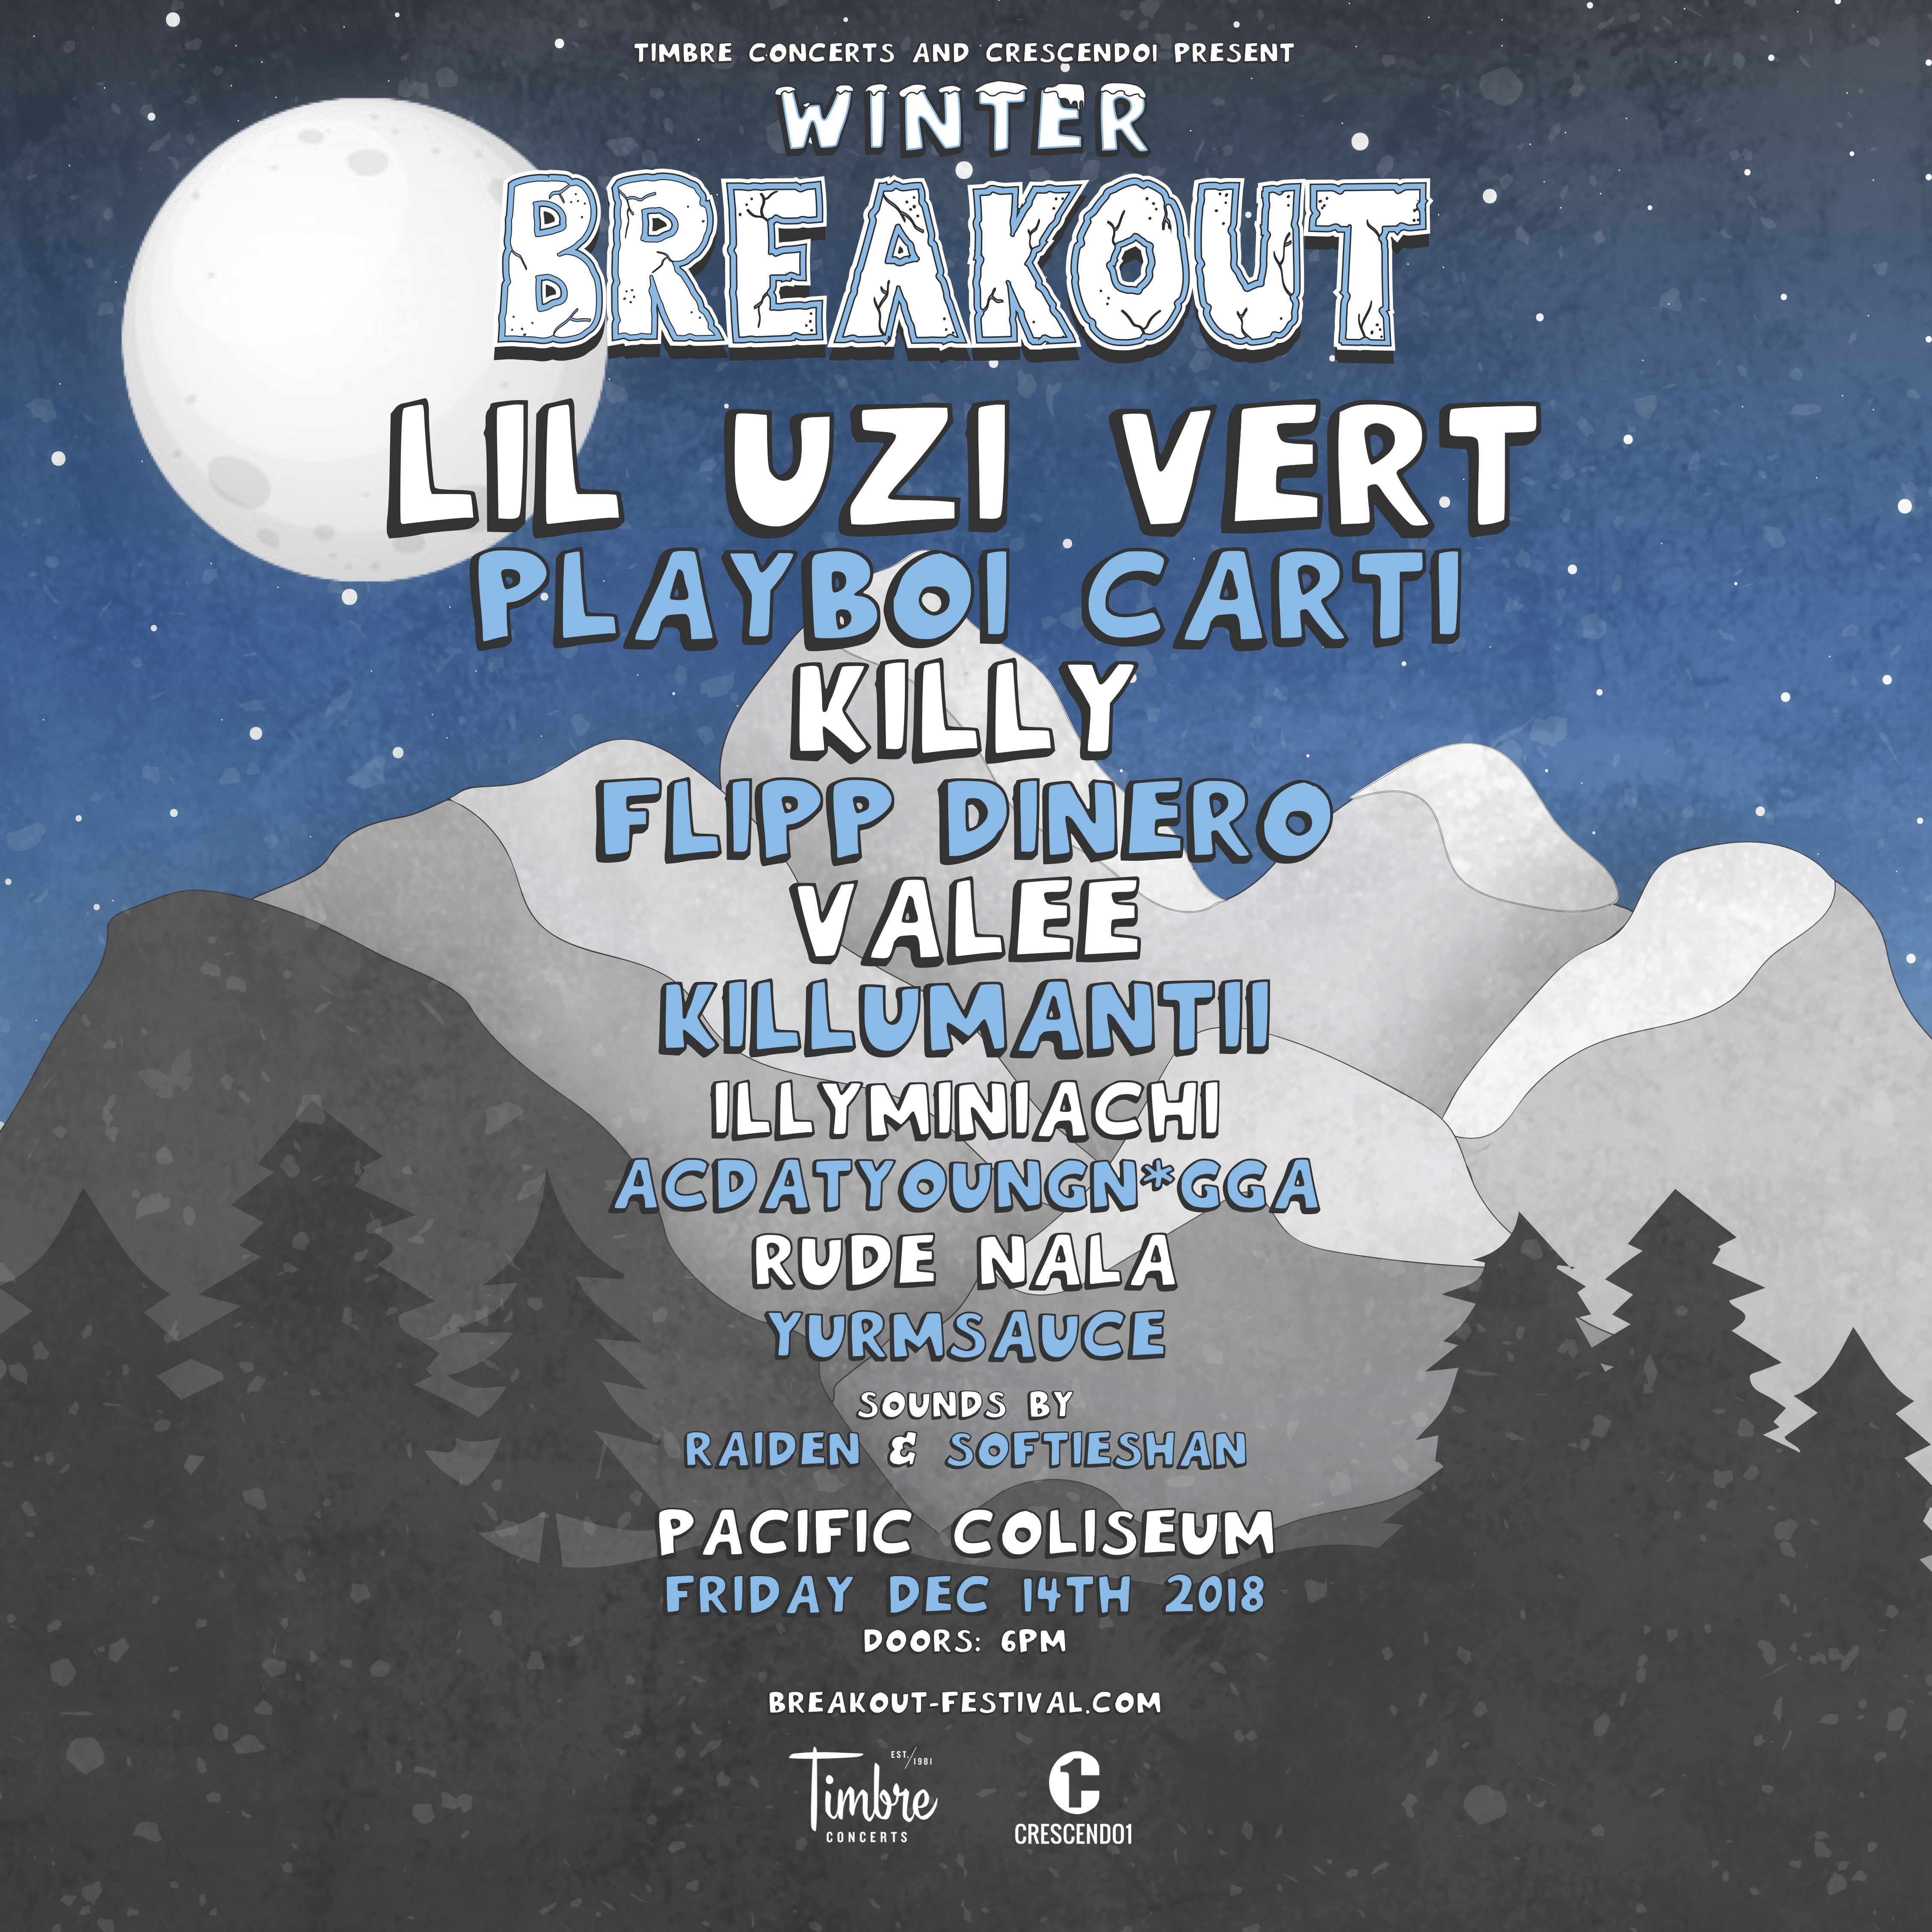 Winter breakout collection